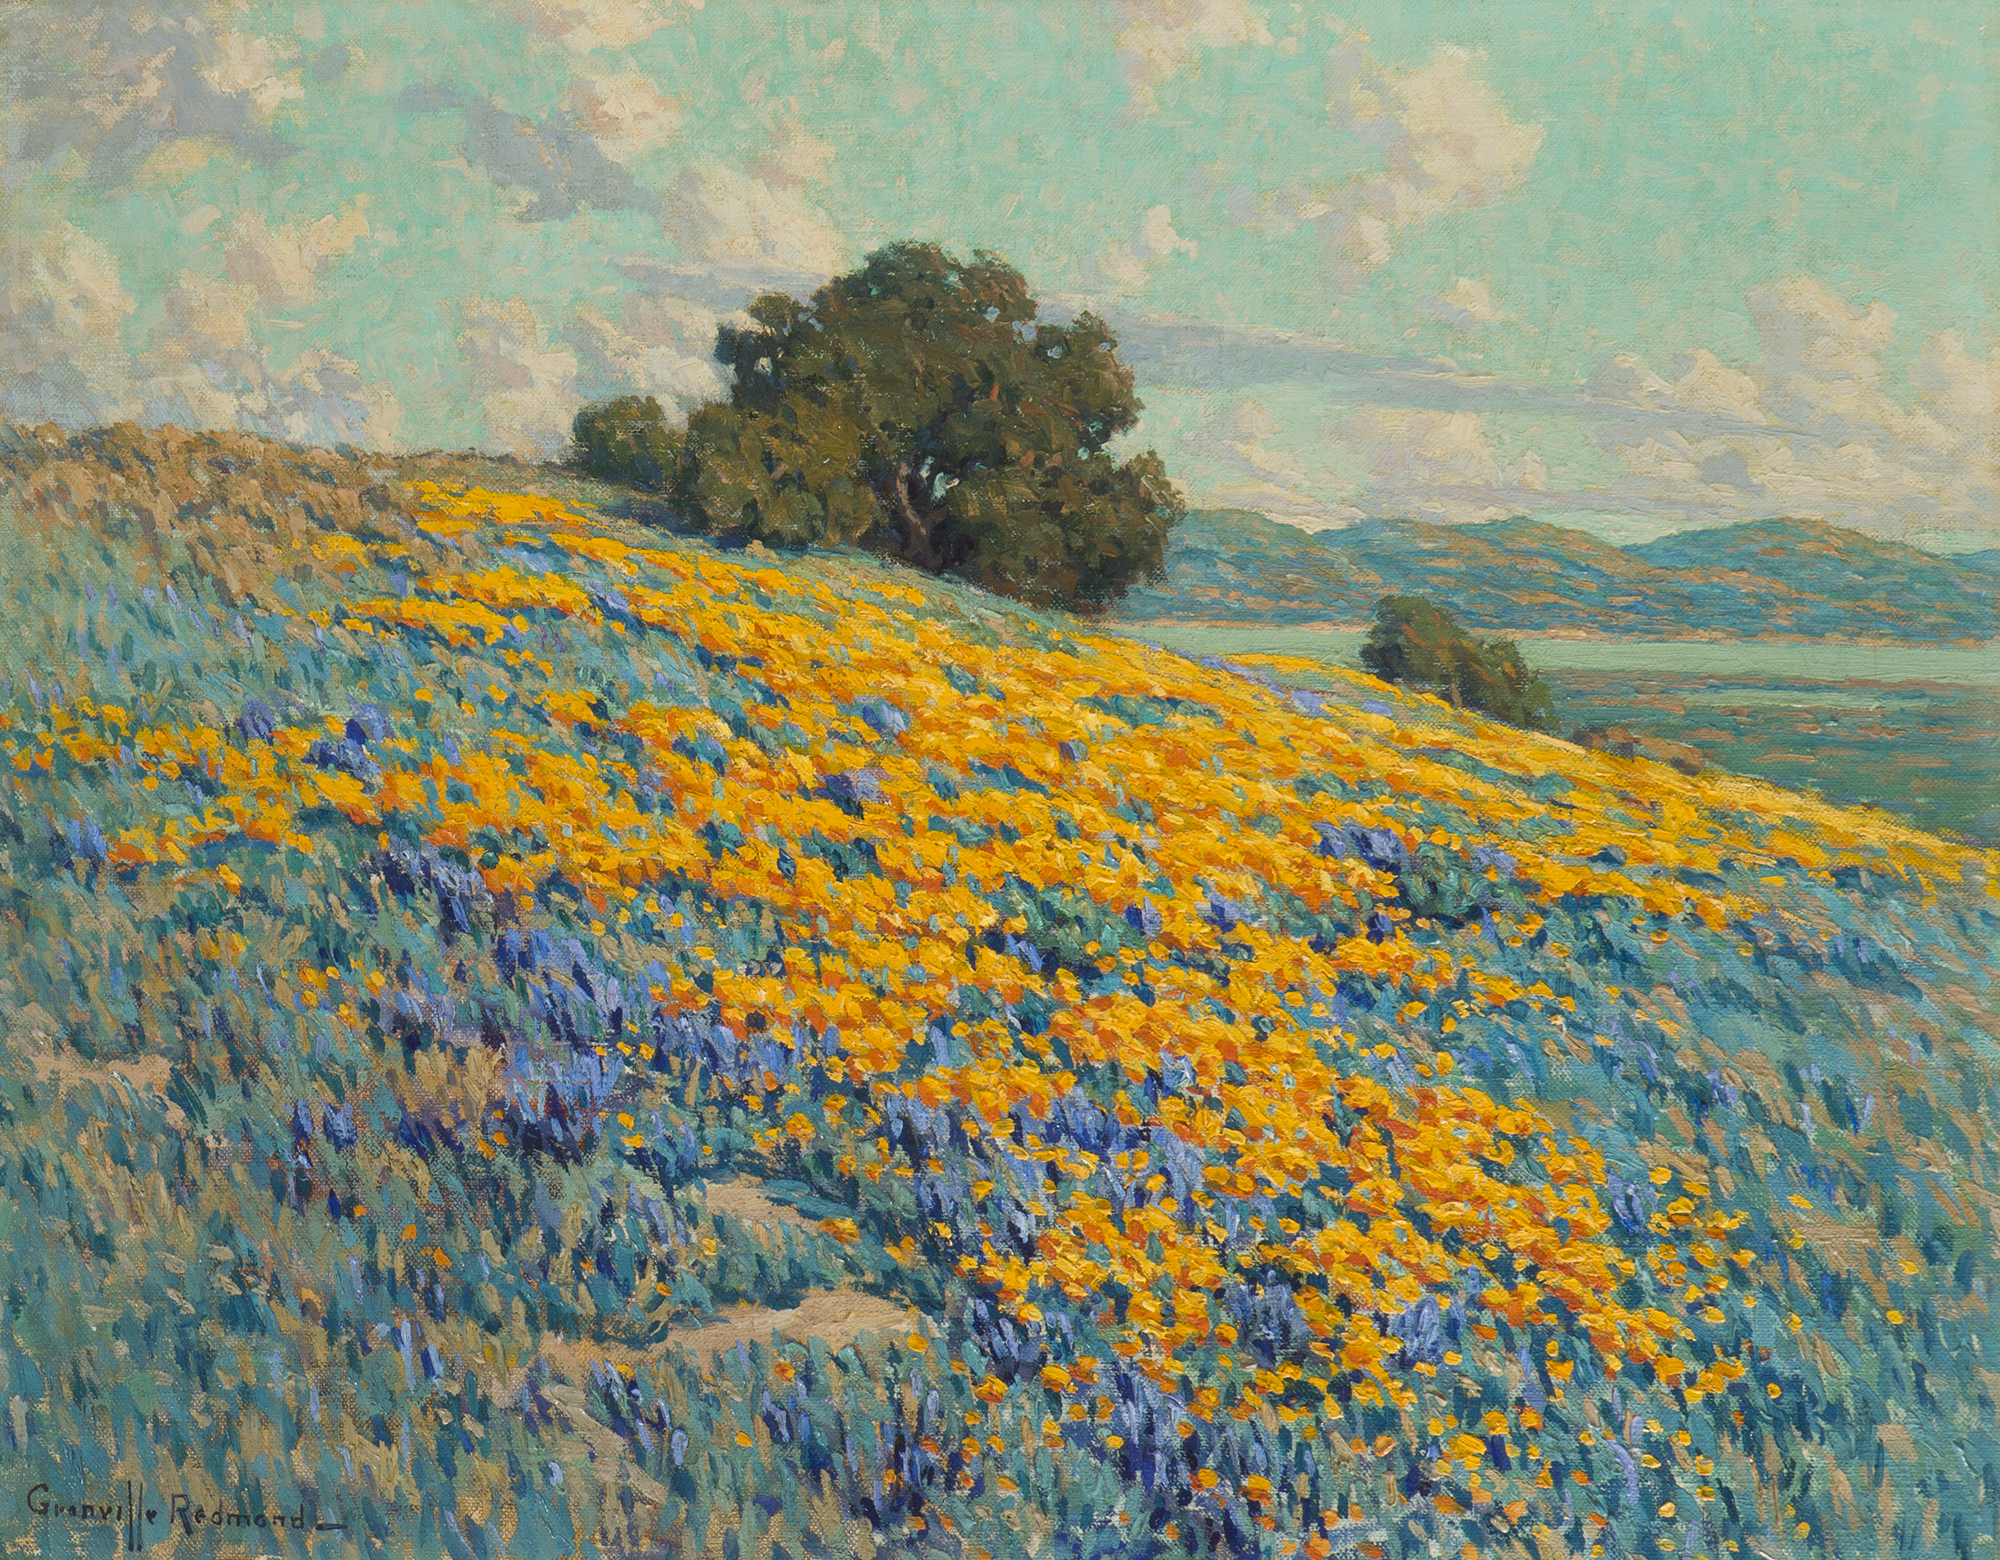 Granville Redmond (1871-1935 Los Angeles, CA) California landscape - Poppies and Lupine, Oil on canvas, 20.5